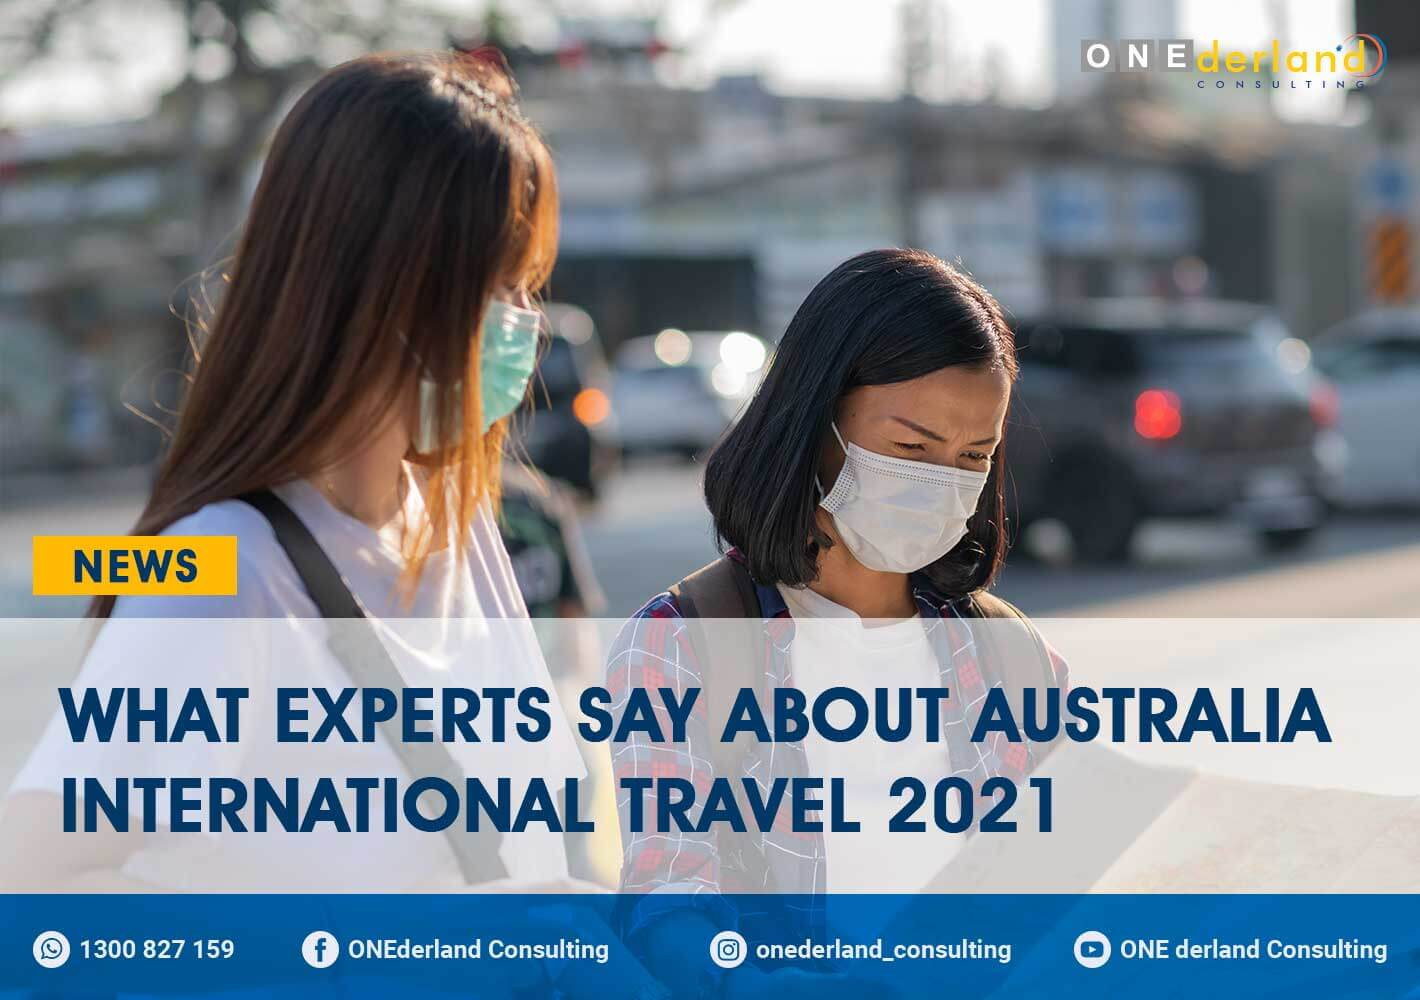 Experts' Discussion on Australia International Travel in 2021